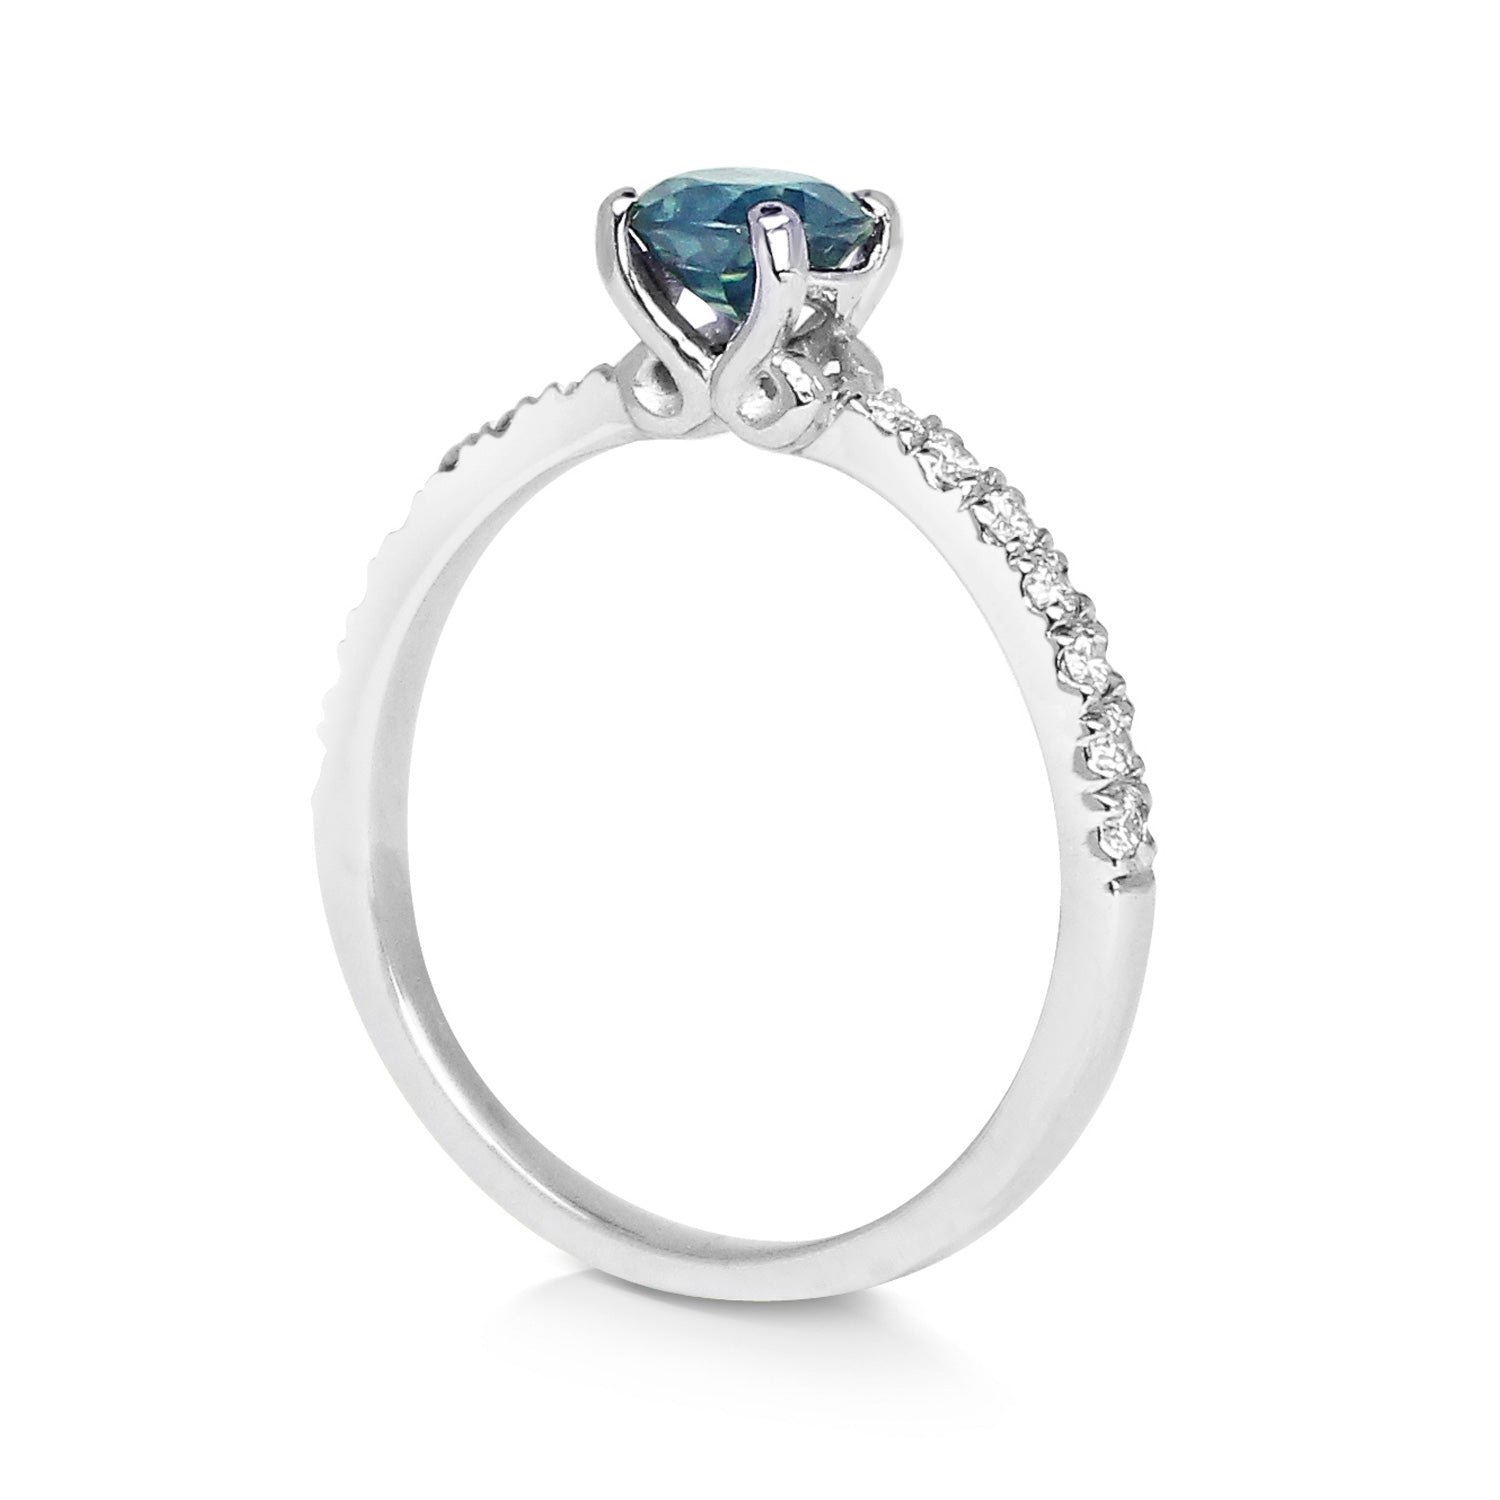 Bespoke engagement ring - teal Malawi sapphire, 100% recycled platinum and microset conflict-free diamonds